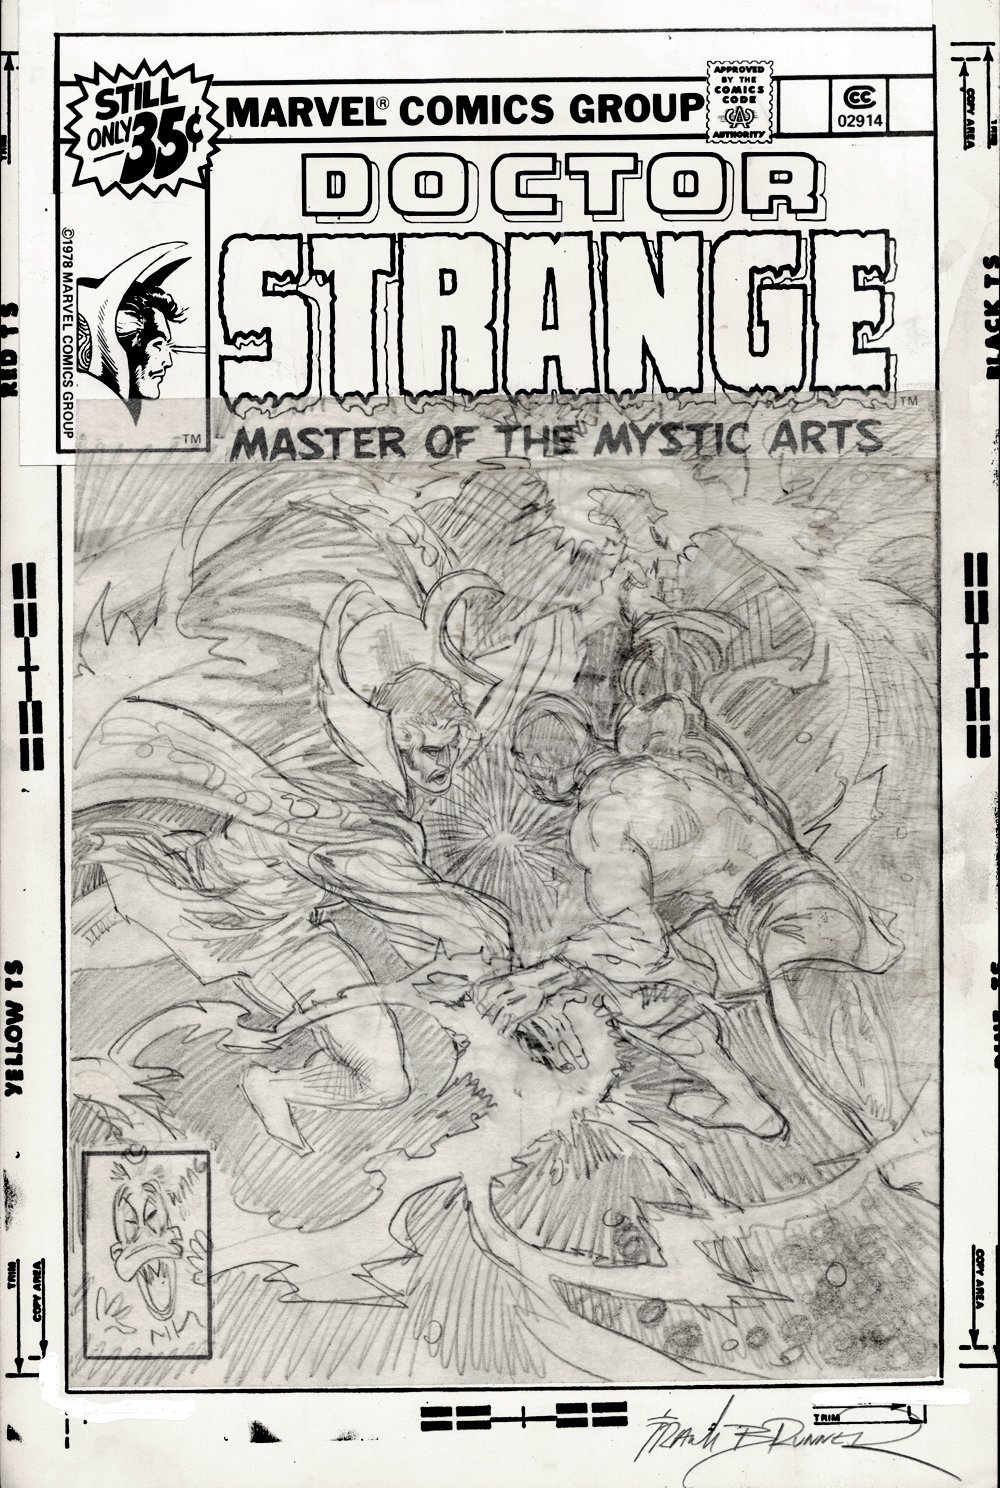 Doctor Strange #28 Cover Pencils (SOLD LIVE ON 'DUELING DEALERS OF COMIC ART' EPISODE #38 PODCAST ON 9-29-2021(RE-WATCH THIS FUNNY ART SELLING SHOW HERE)